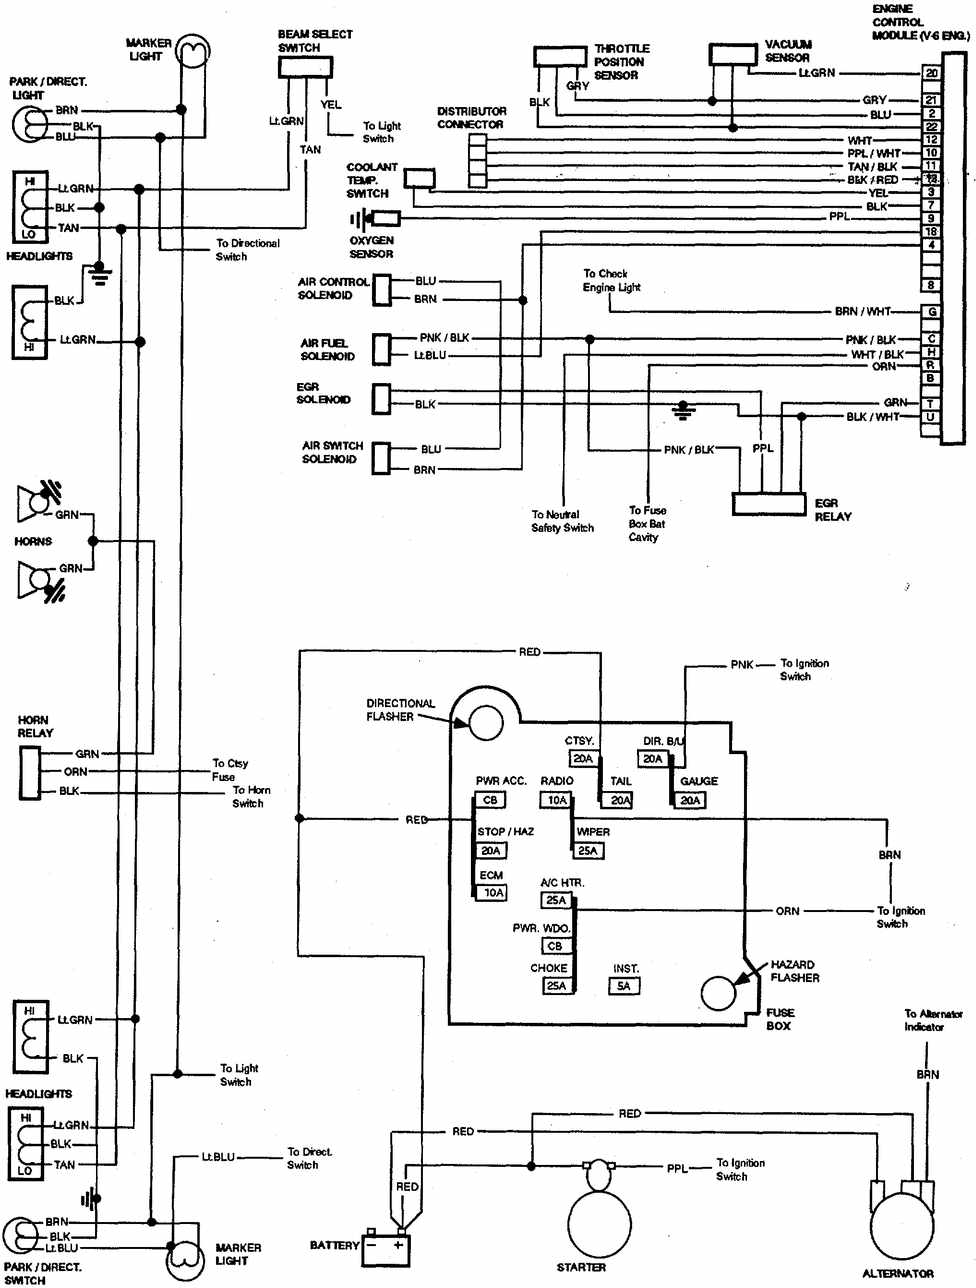 1989 Buick Century Wiring Diagram Auto Electrical 2000 Park Avenue Starter Free Download Chevrolet V8 Trucks 1981